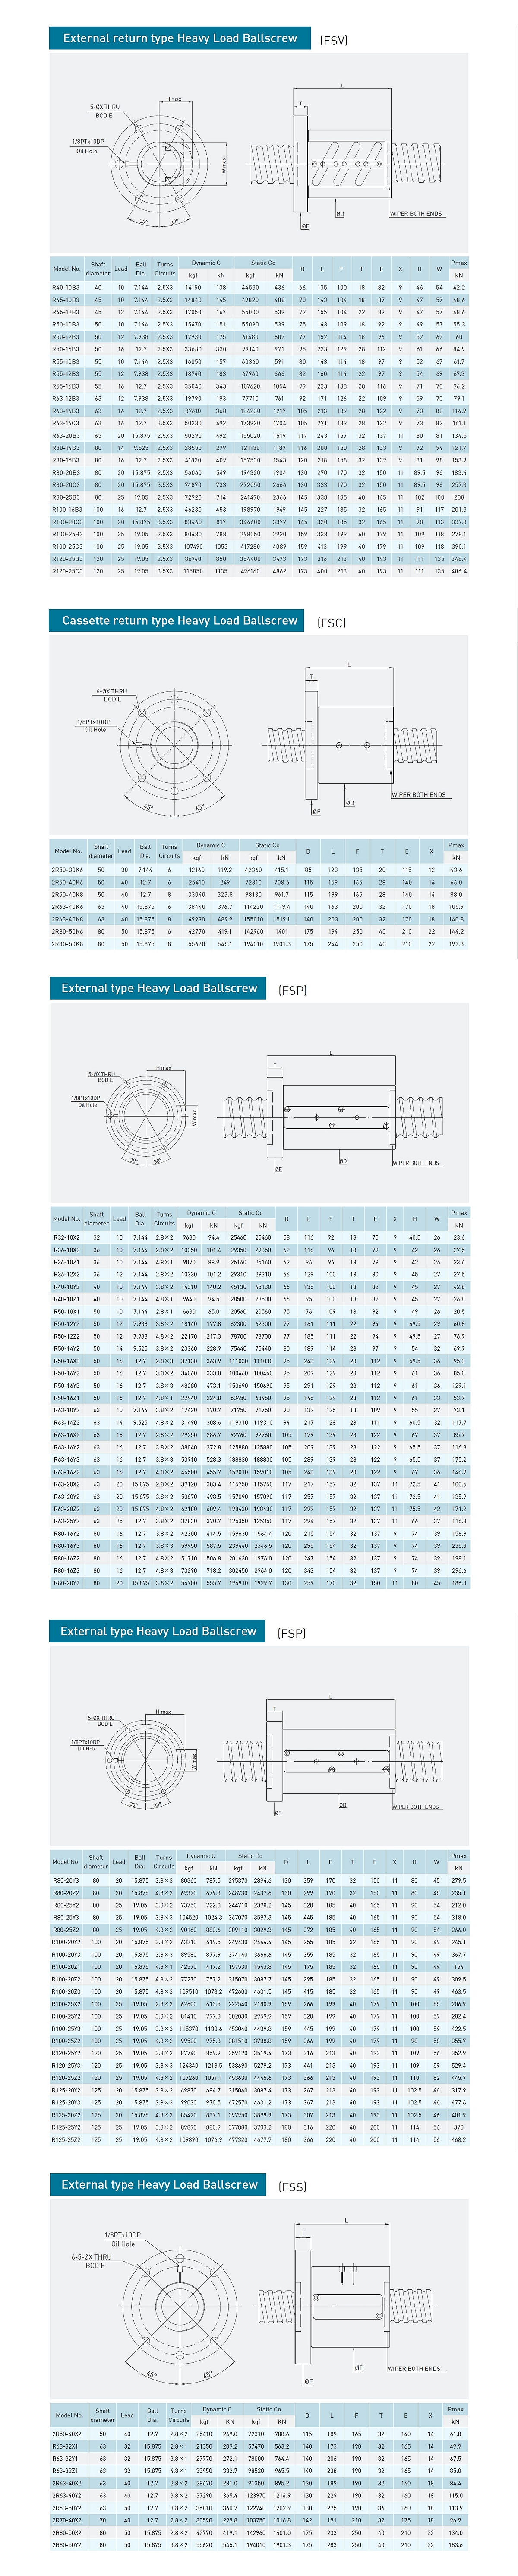 HIWIN Ballscrew Heavyload Series Spec